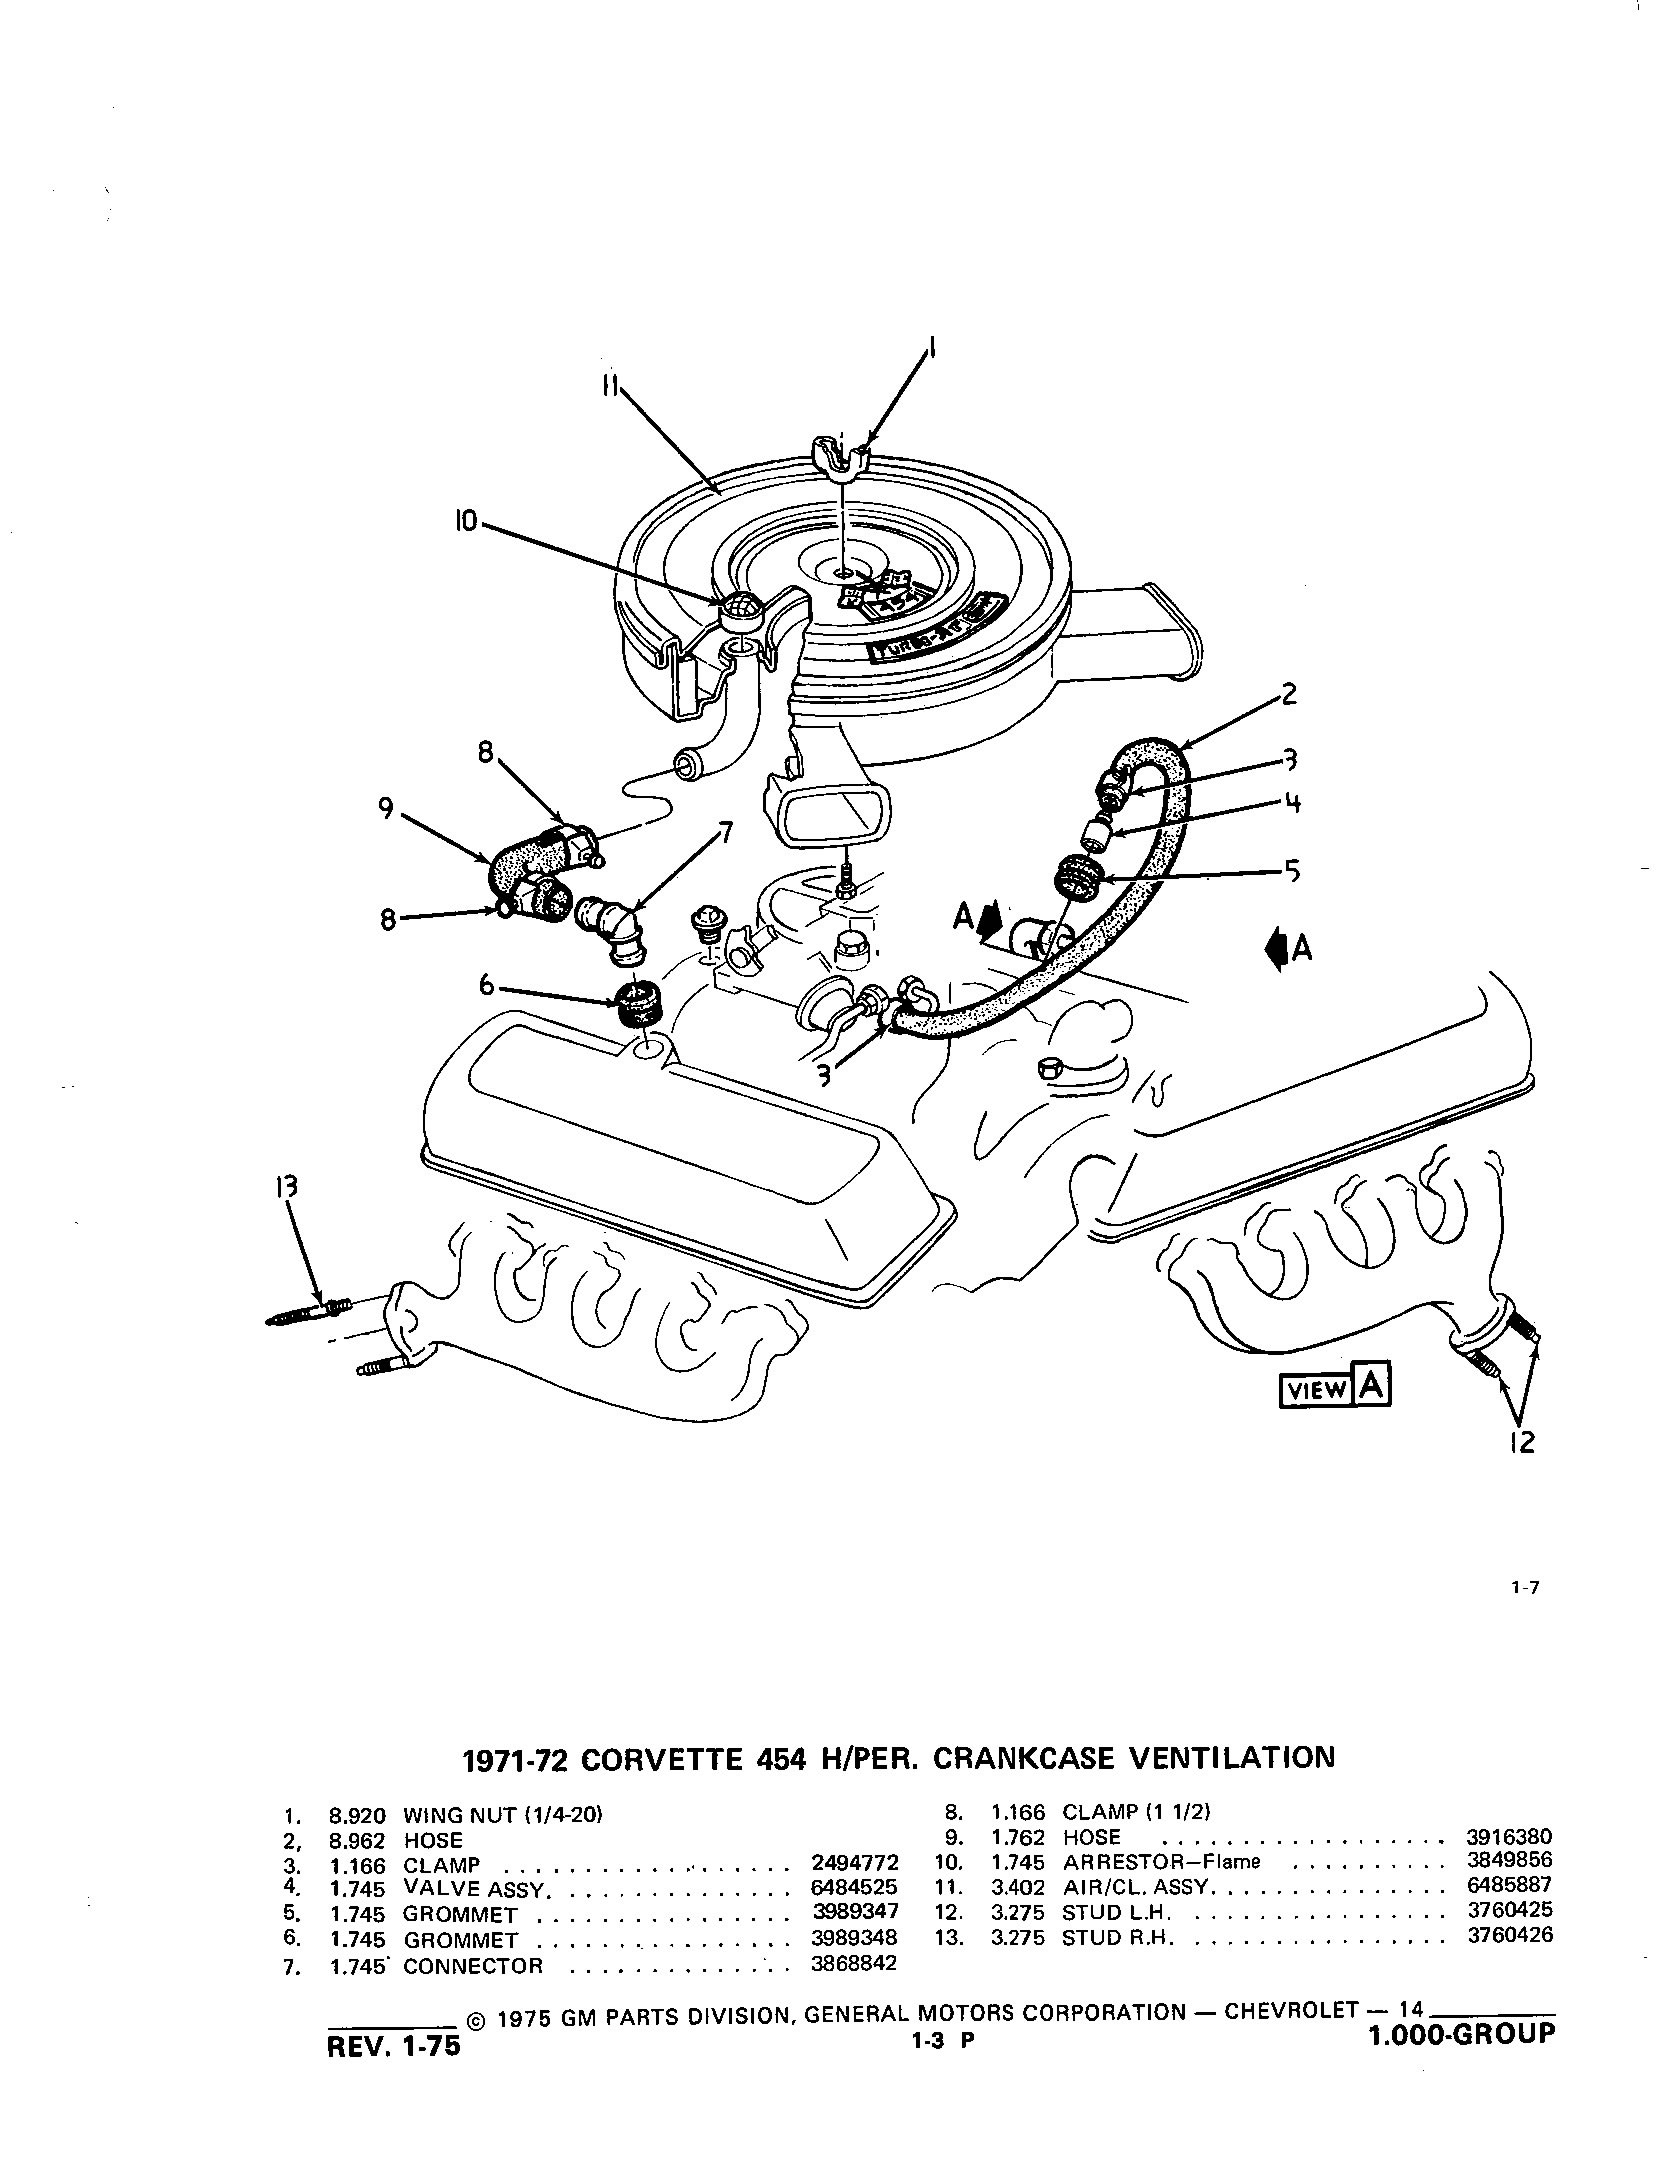 Group 1.000 Coolant, Grille, Oil Systems / 1953-1973